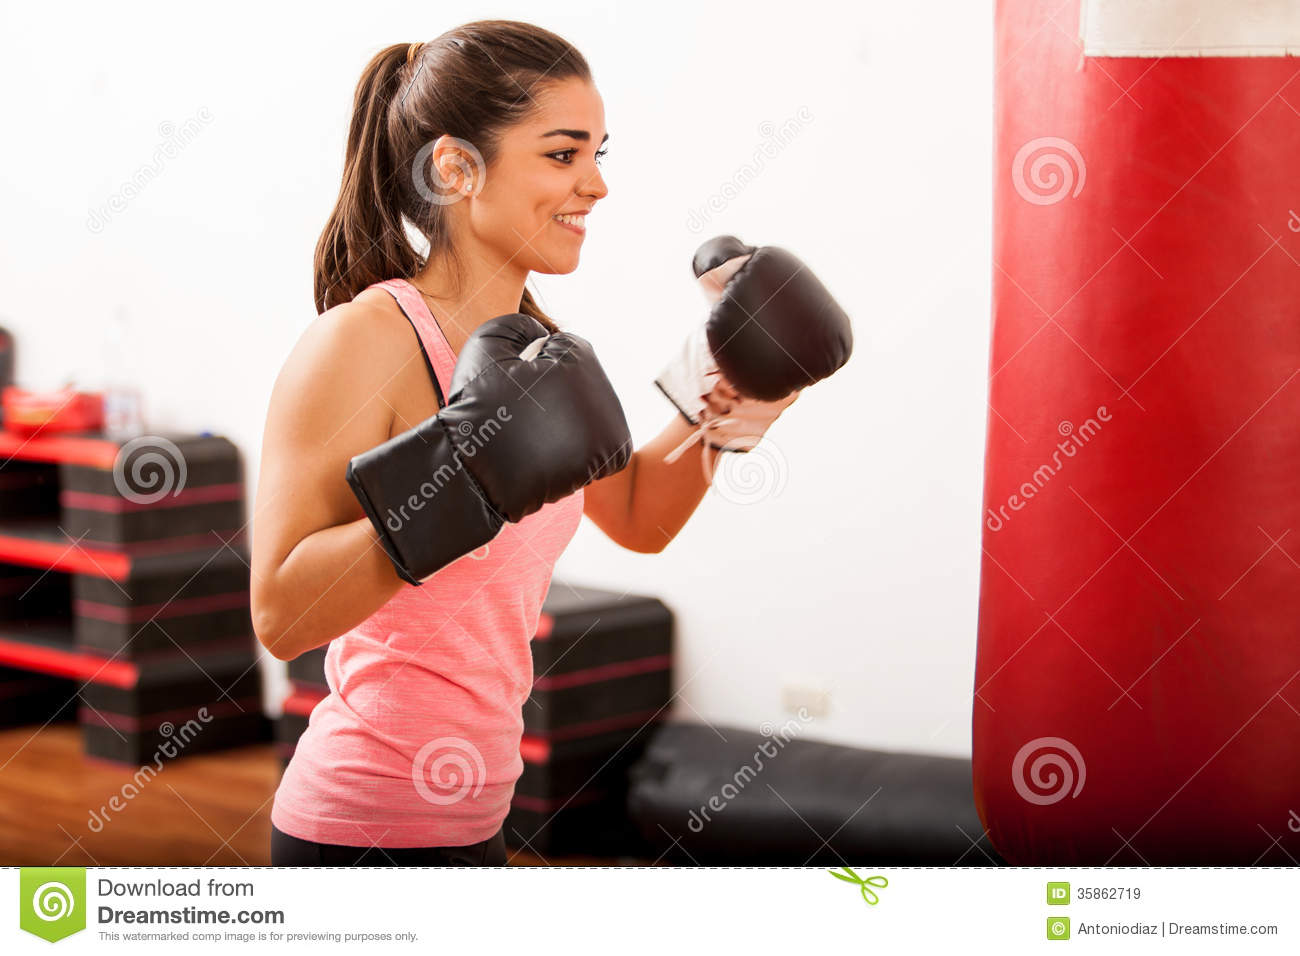 Punch Home Design Studio Download Free Cute Female Boxer Training In A Gym Royalty Free Stock